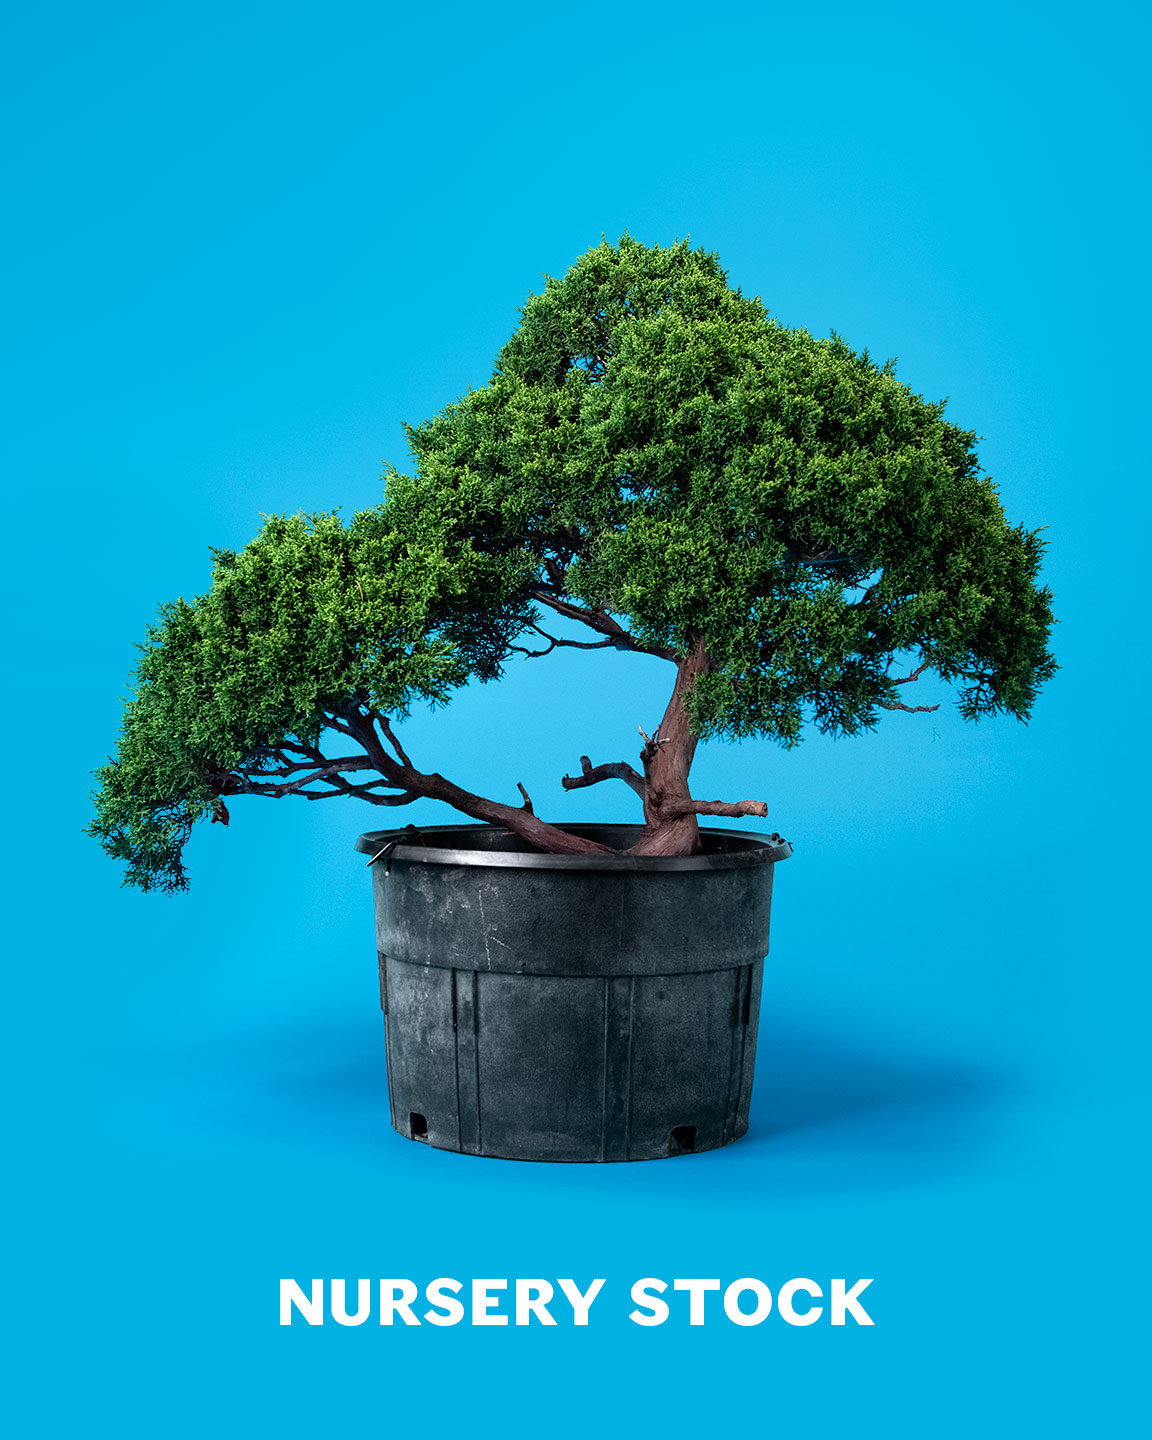 bonsai_nursery_stock